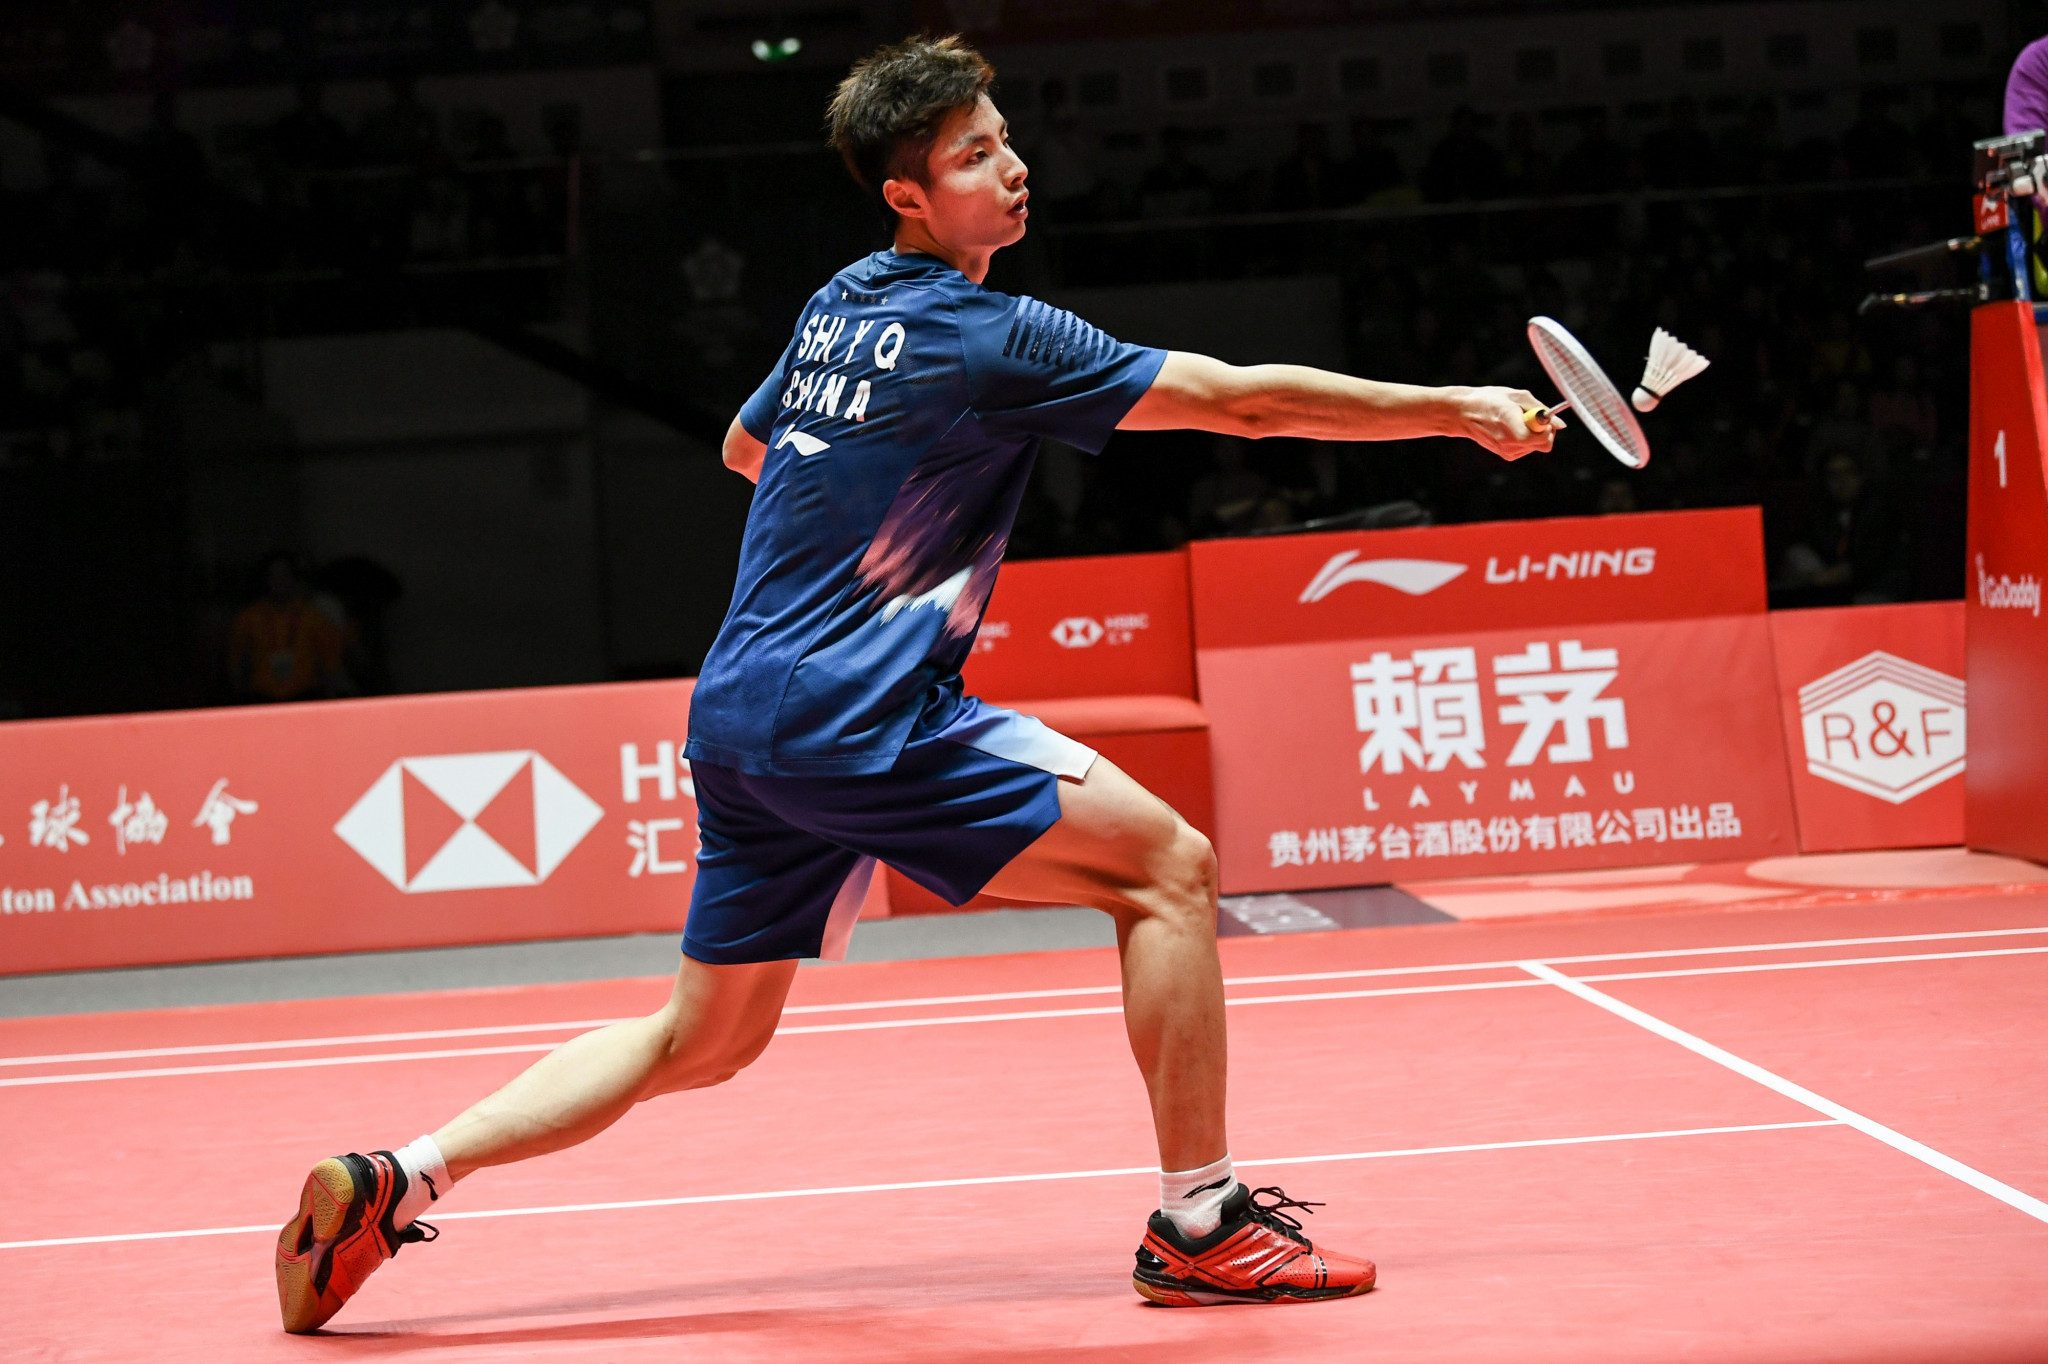 Second seed Shi Yuqi of China suffered elimination from the BWF Indonesia Masters after losing to home favourite Jonatan Christie in Jakarta today ©Getty Images